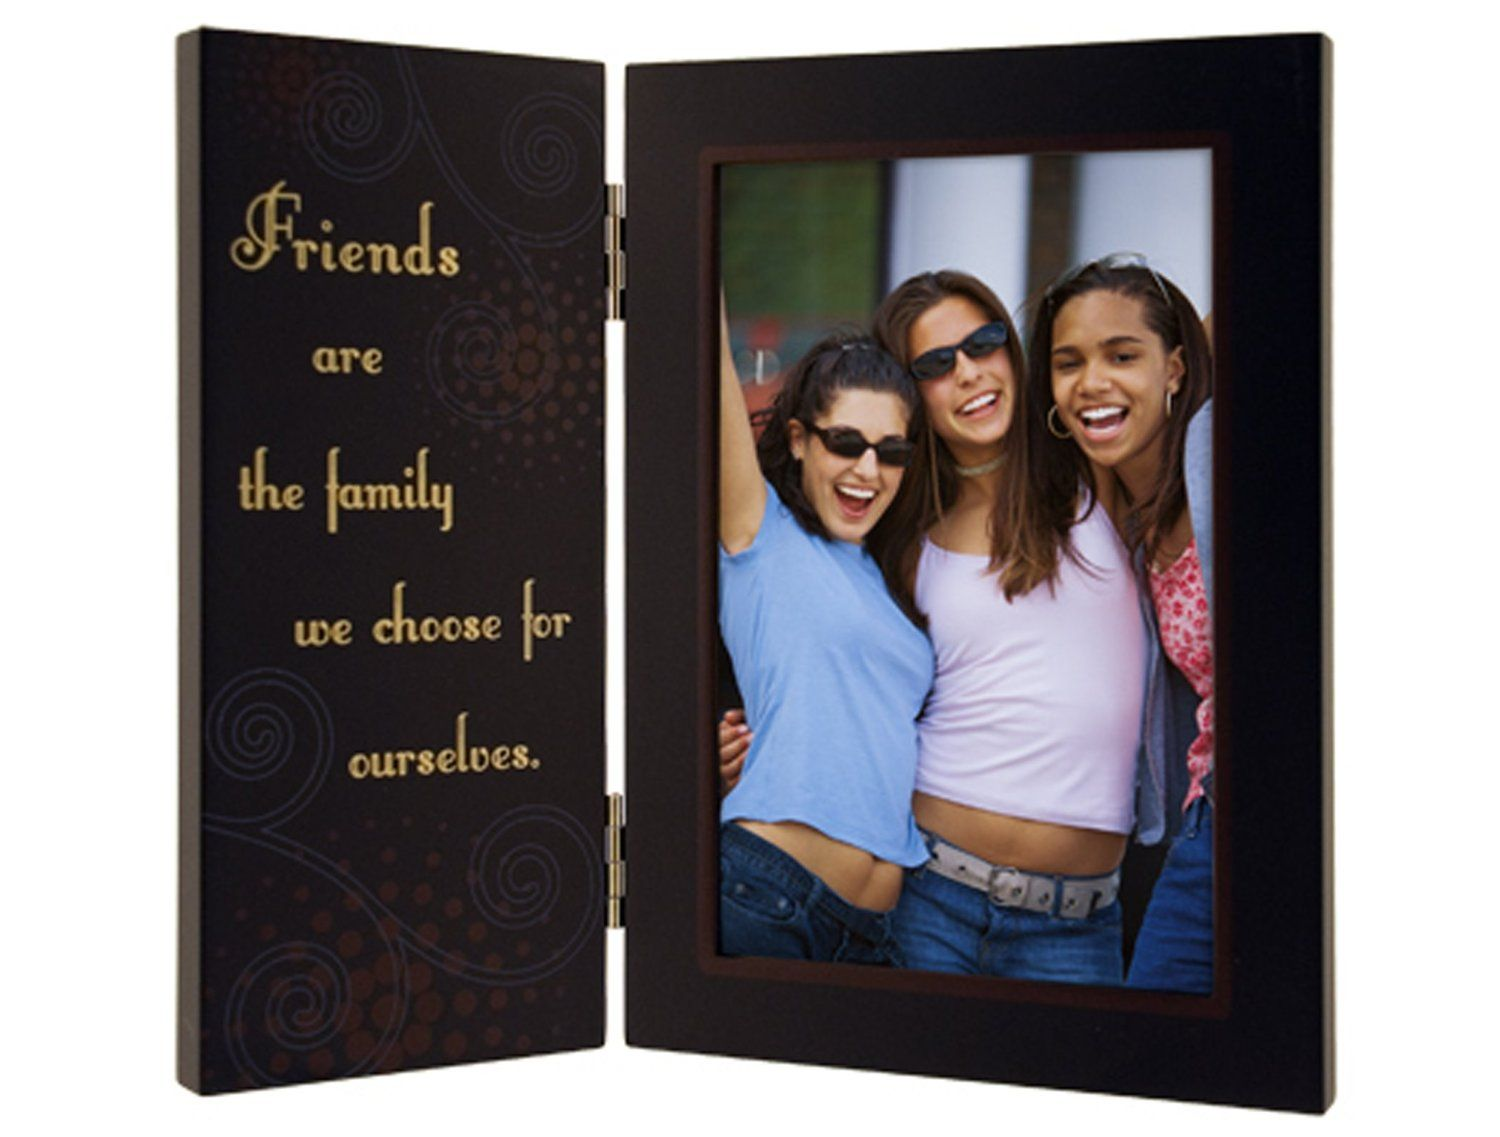 malden friends are the family we choose for ourselves storyboard frame 4 by 6